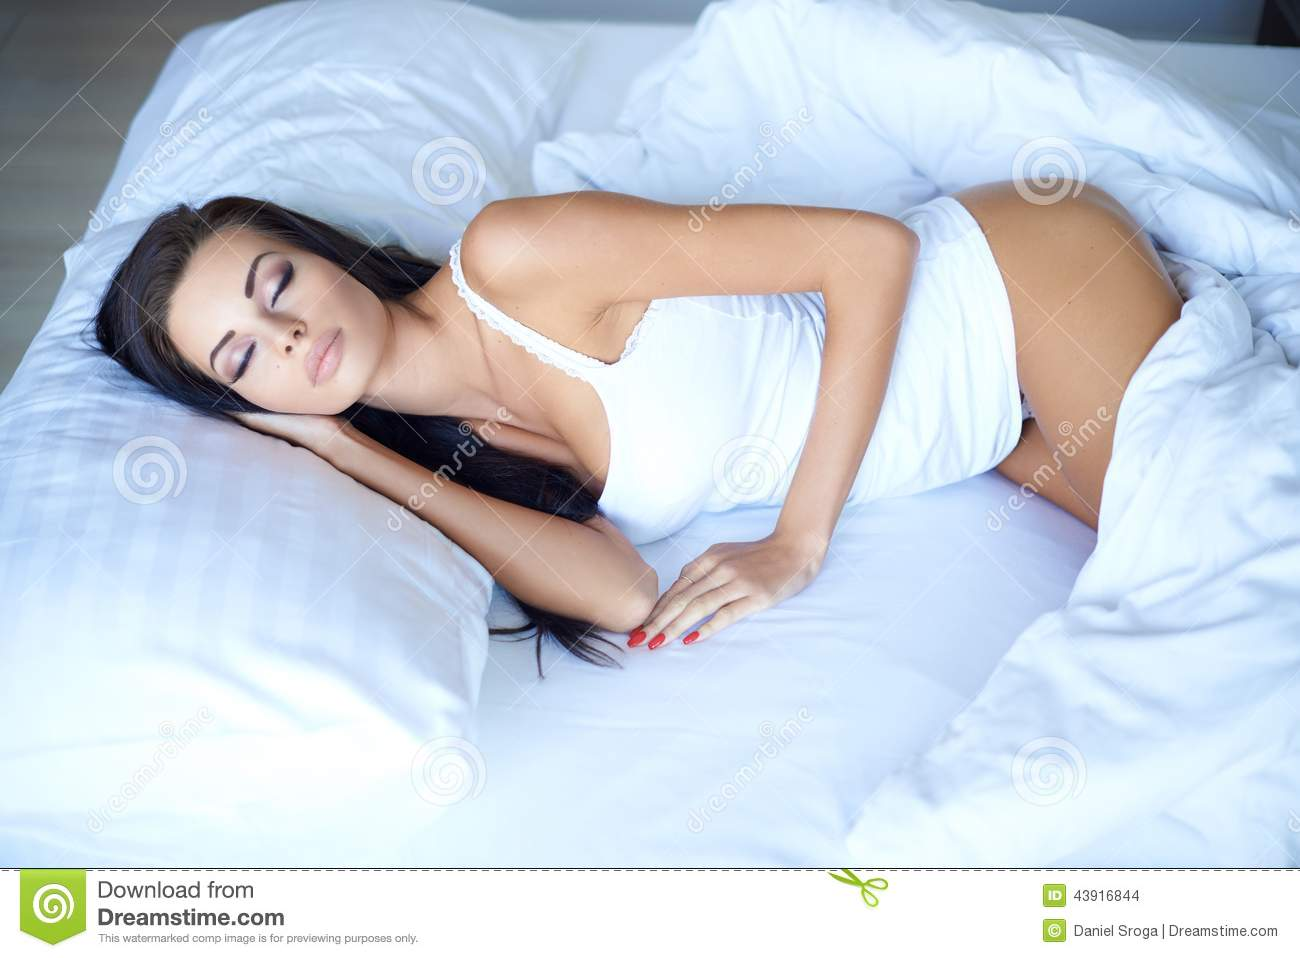 Beautiful young woman sleeping peacefully in bed on a hot night with the  white duvet down around her knees and her body in sleepwear uncovered cf79585d5